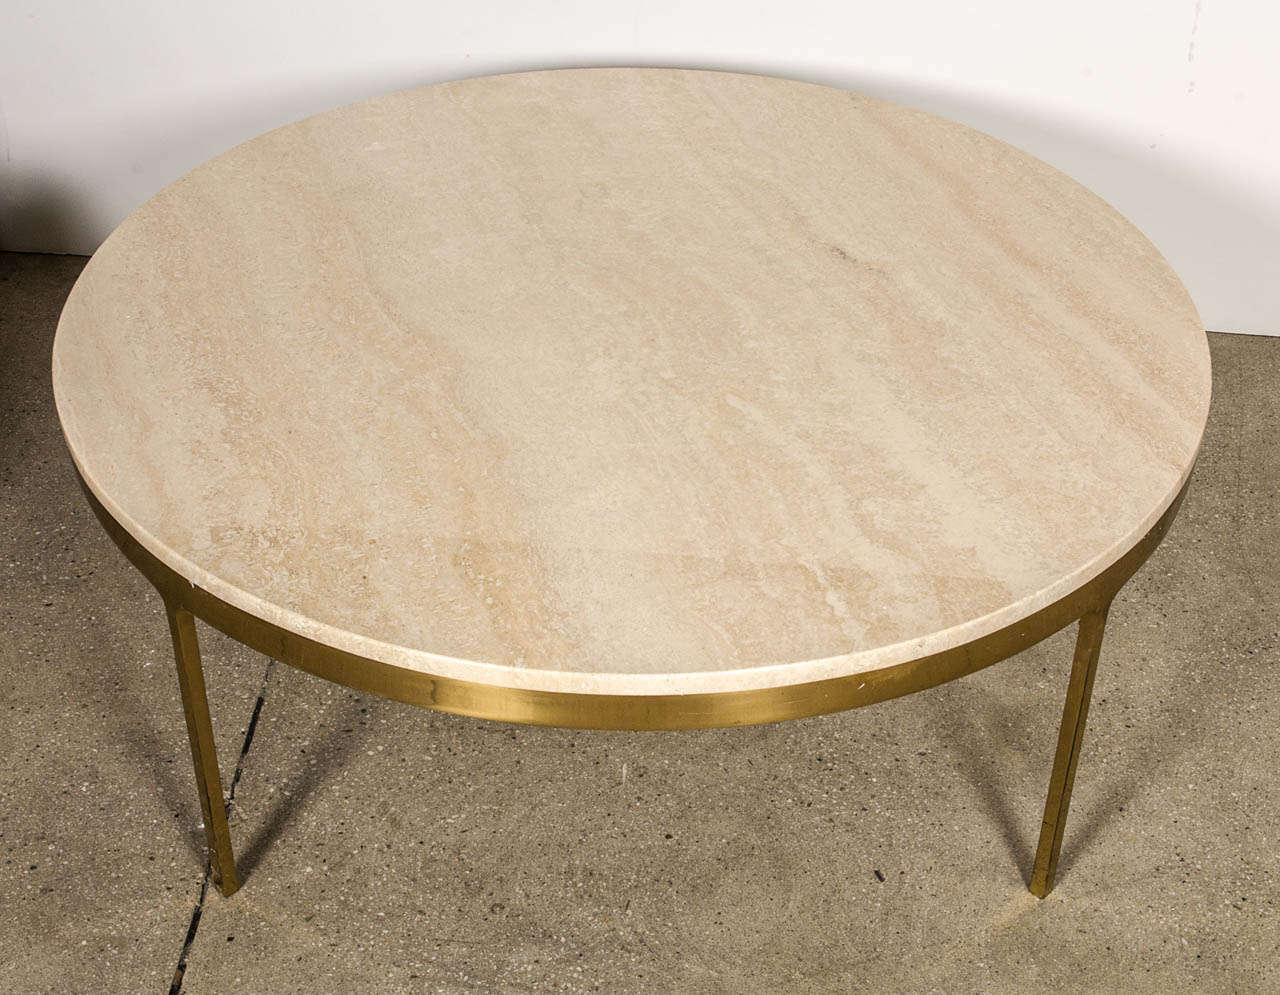 Brass And Travertine Round Coffee Table By Nico Zographos At 1stdibs